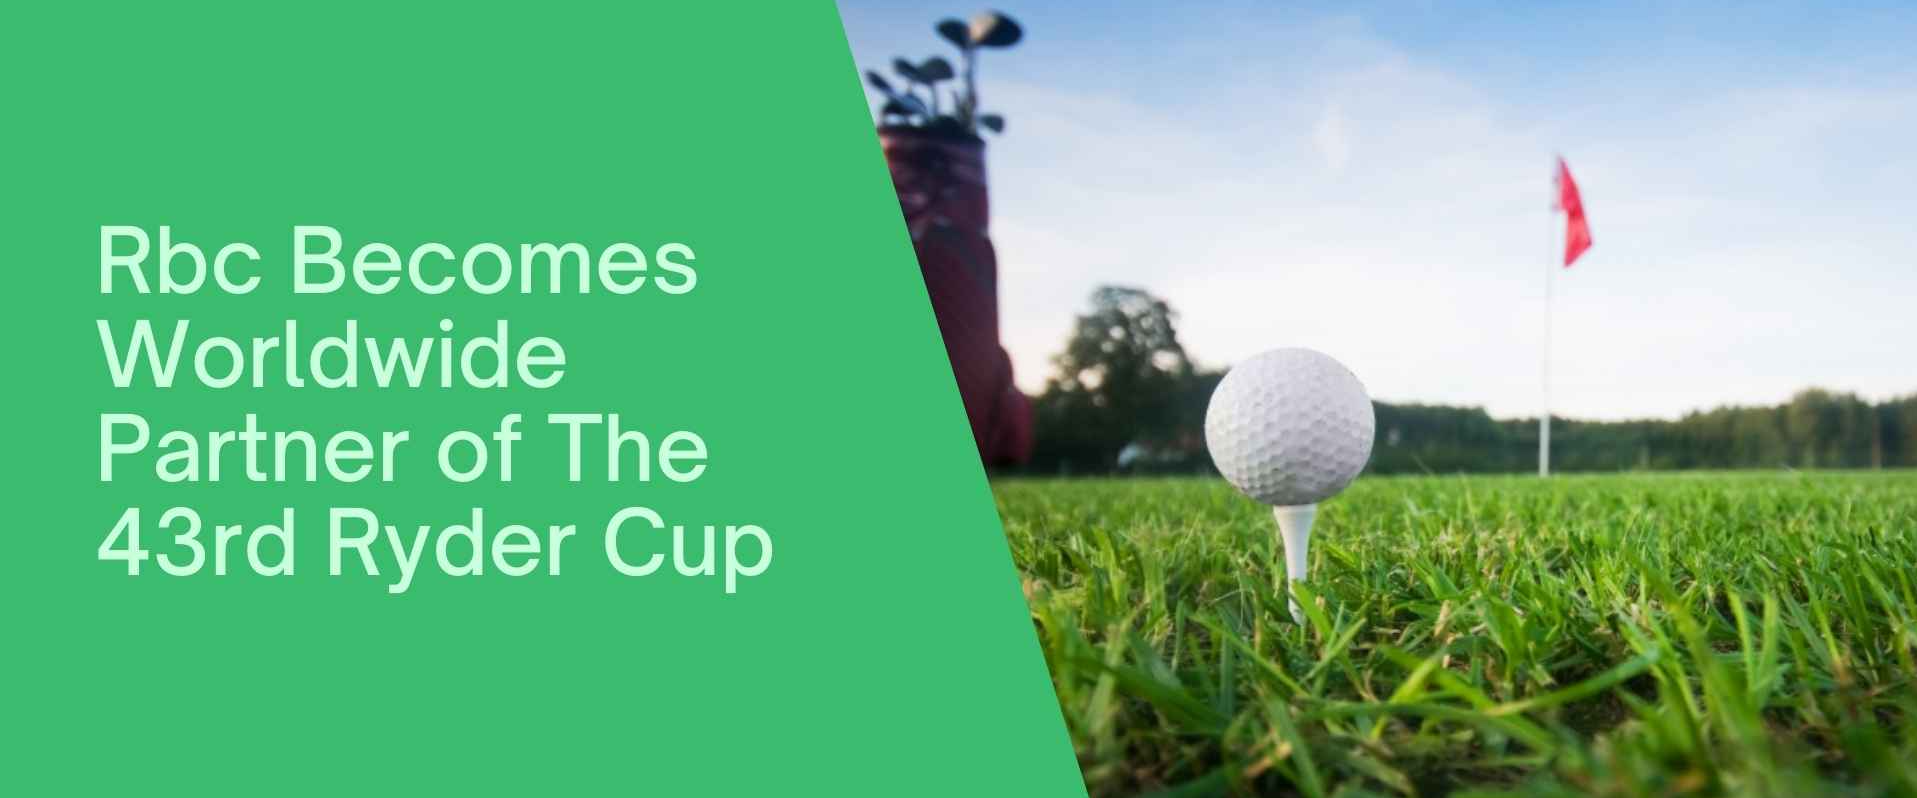 Rbc Becomes Worldwide Partner Of The 43rd Ryder Cup